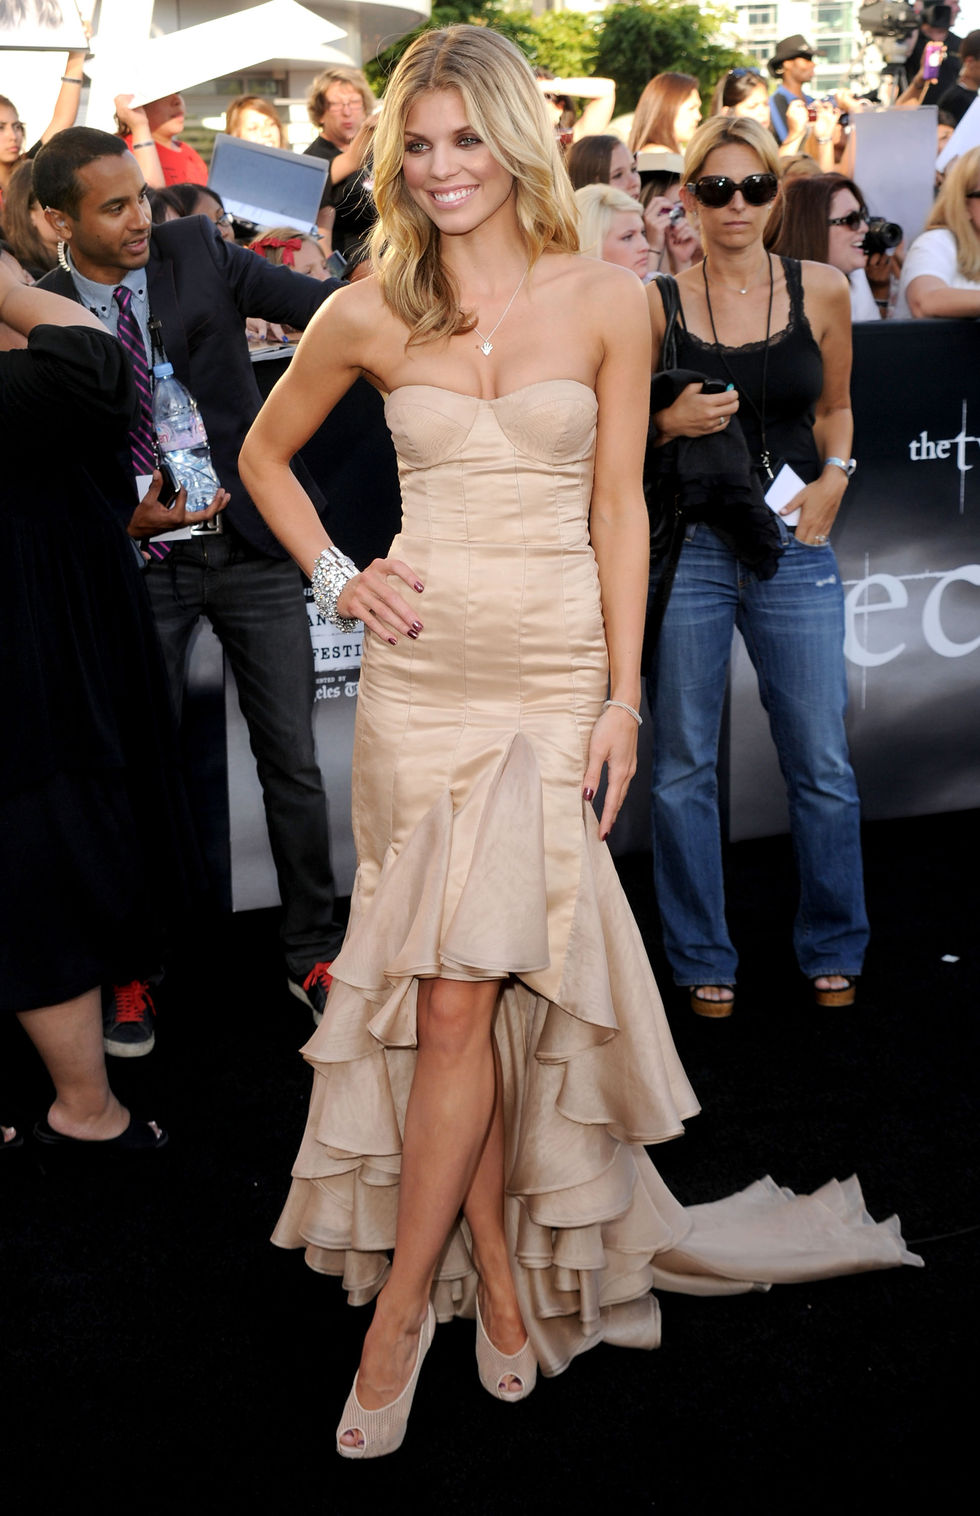 AnnaLynne McCord 2010 : annalynne-mccord-twilight-saga-eclipse-premiere-nokia-theater-in-la-28